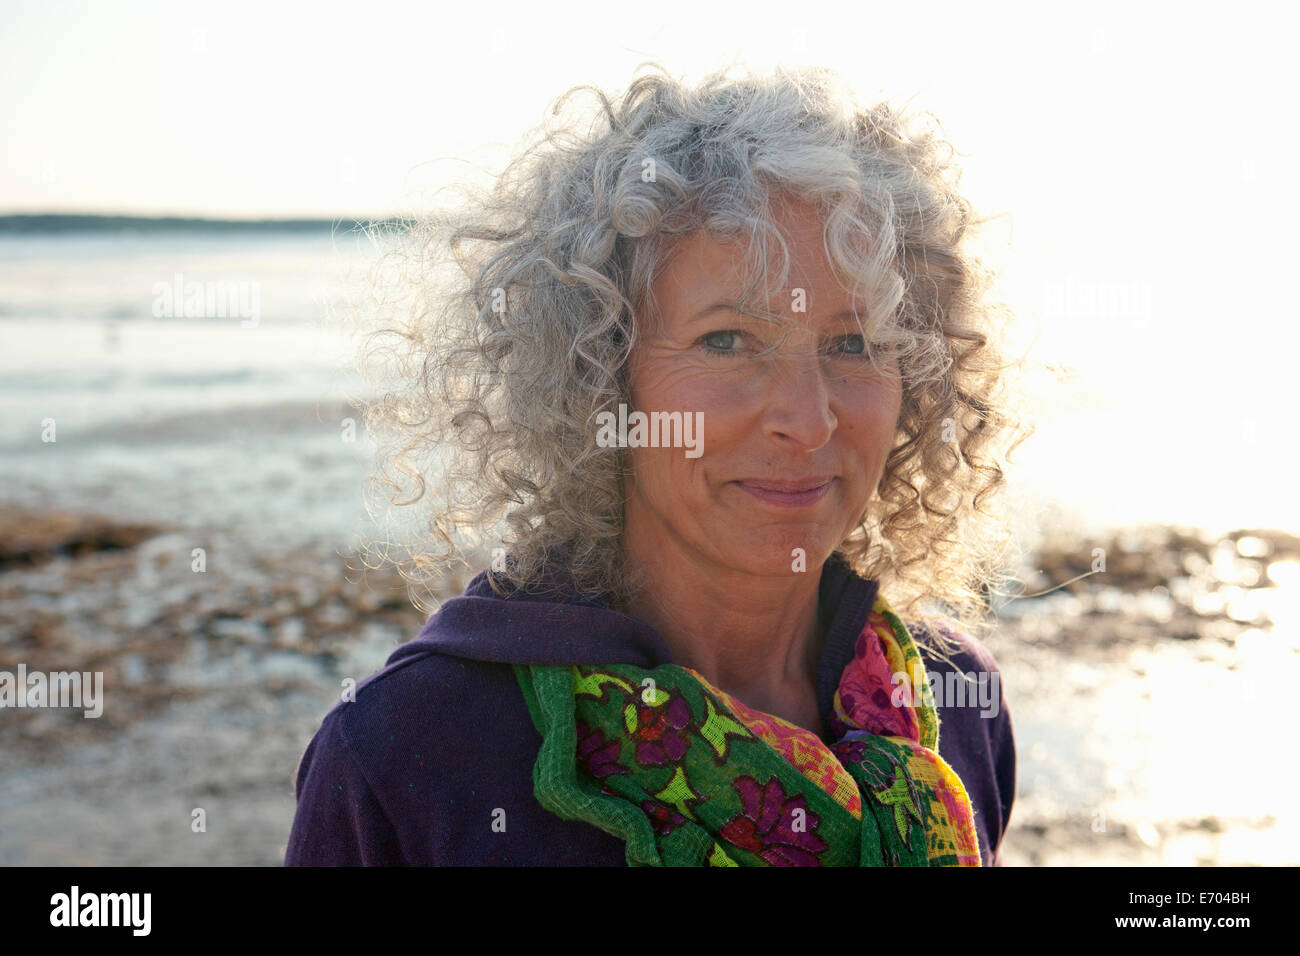 Close up of young woman by beach Photo Stock